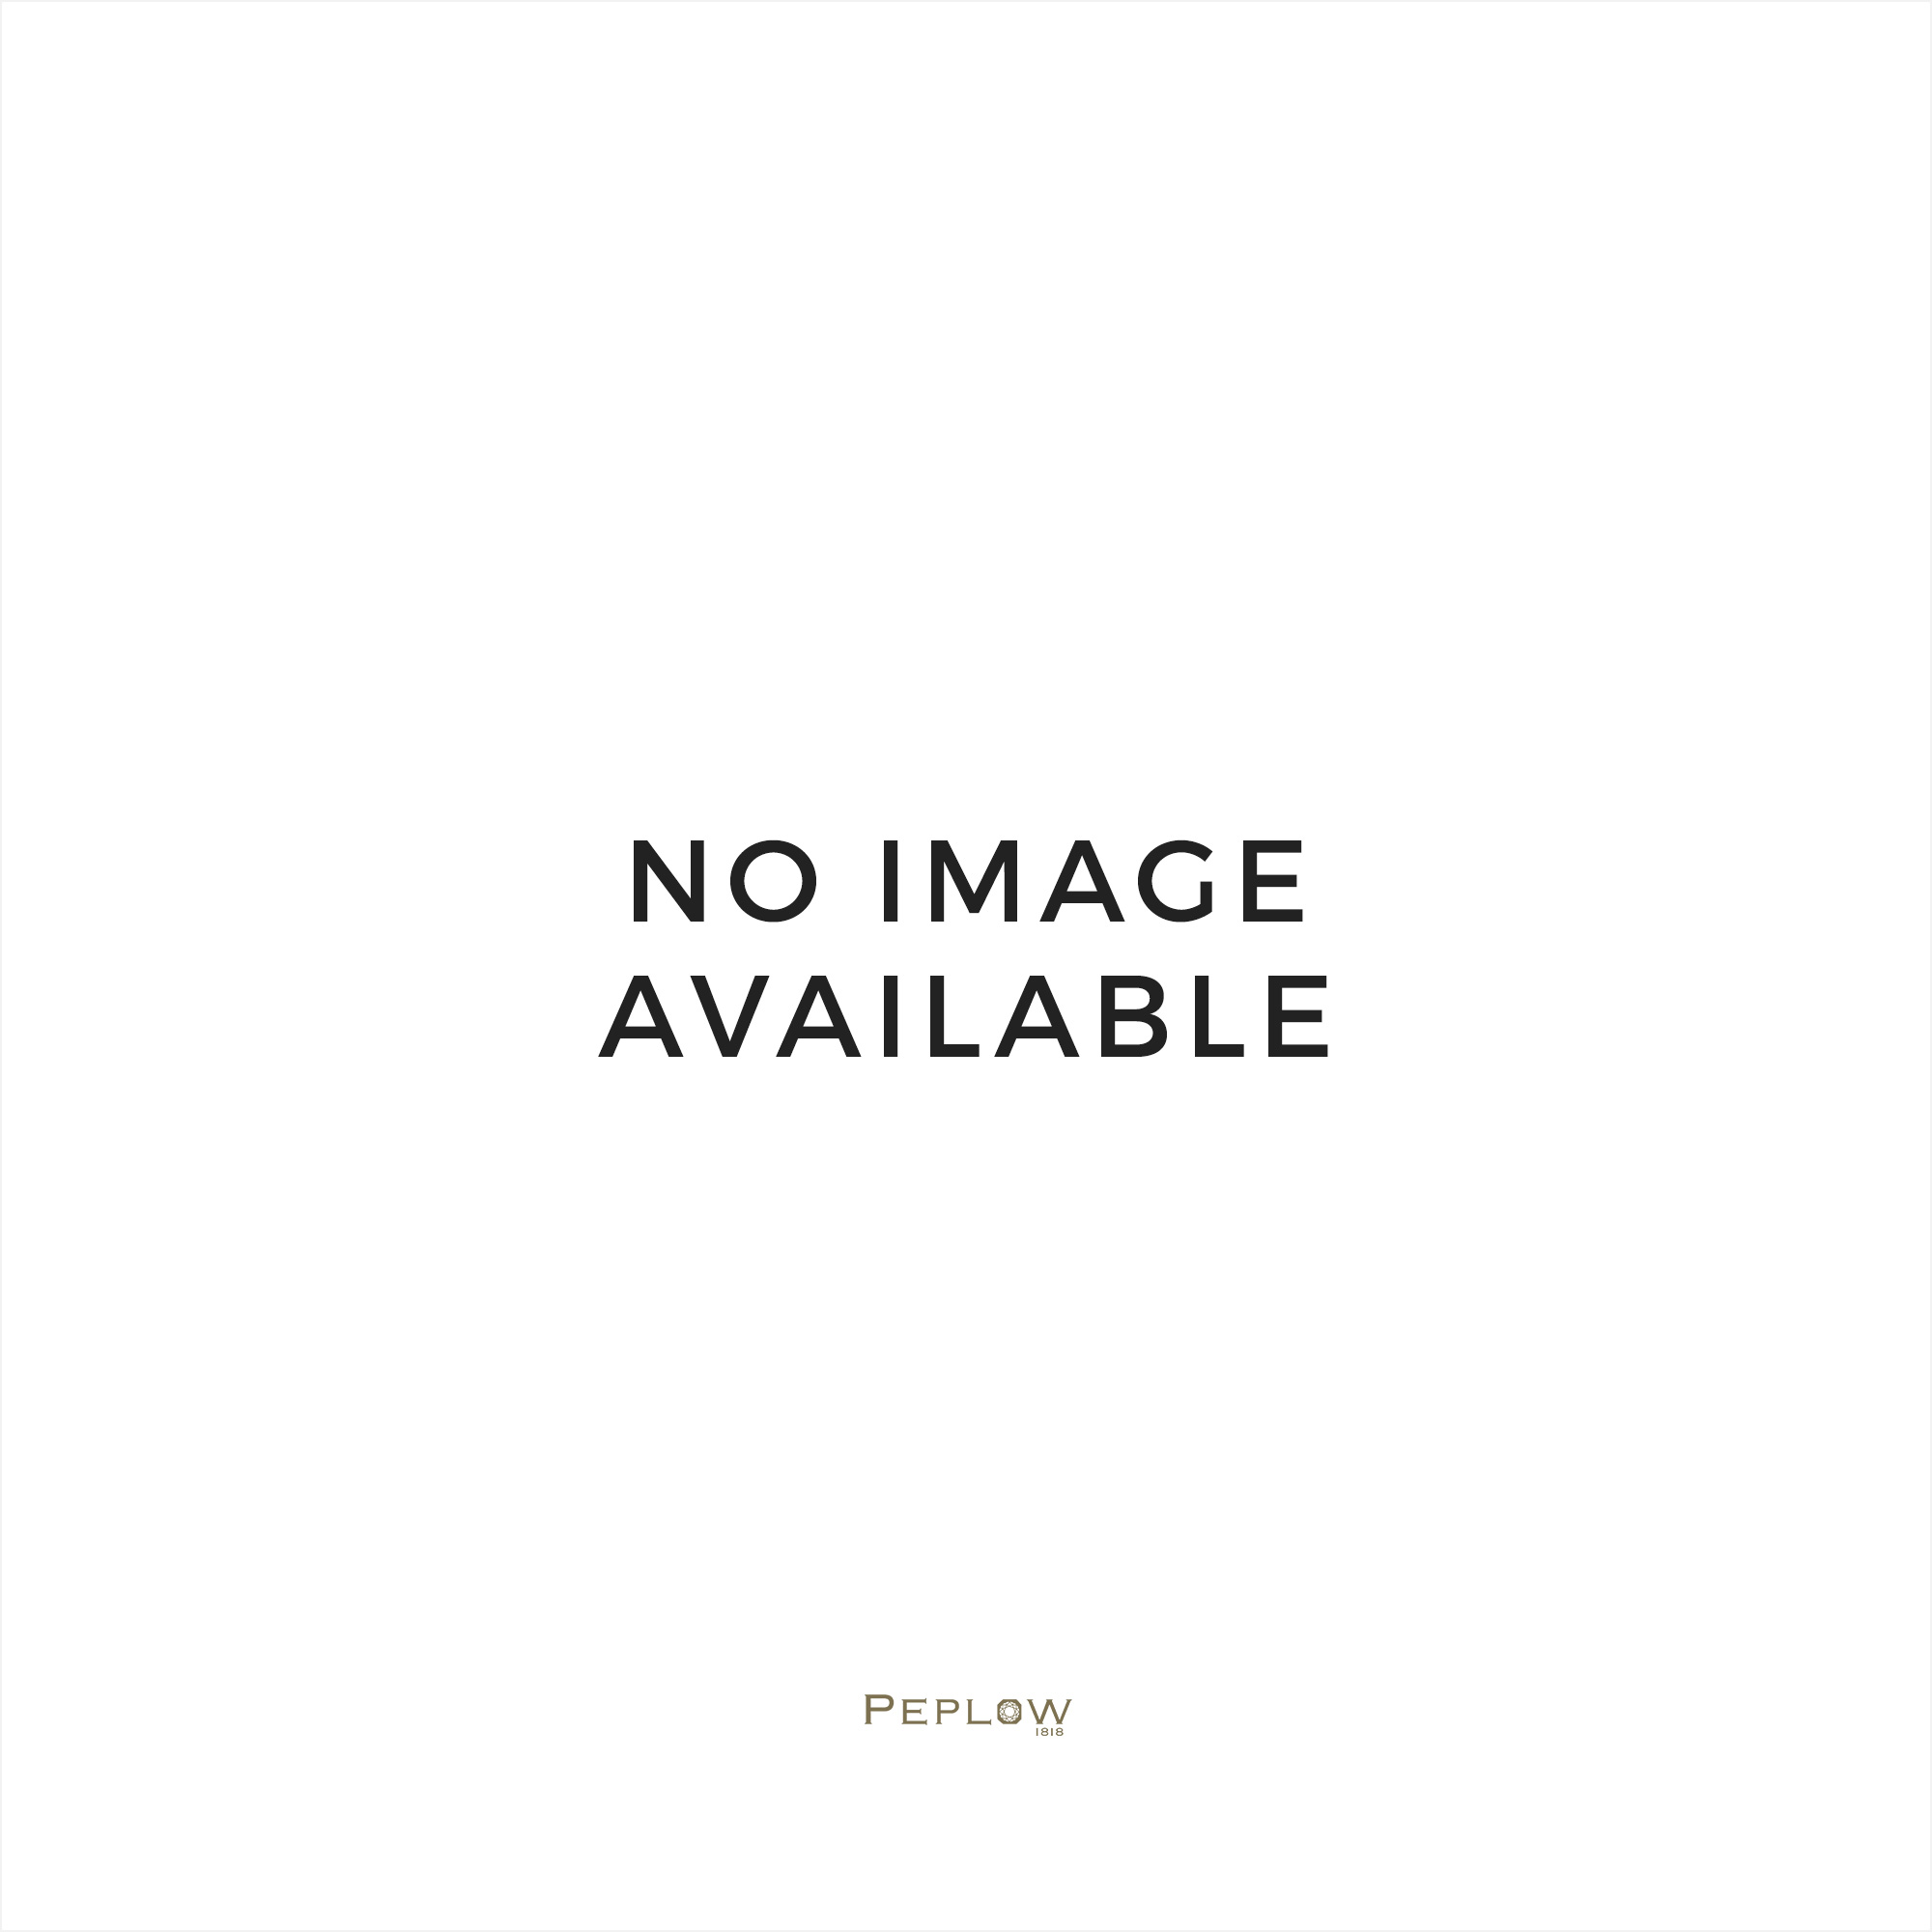 Festina Gents steel Festina black dial chronograph watch with bracelet.